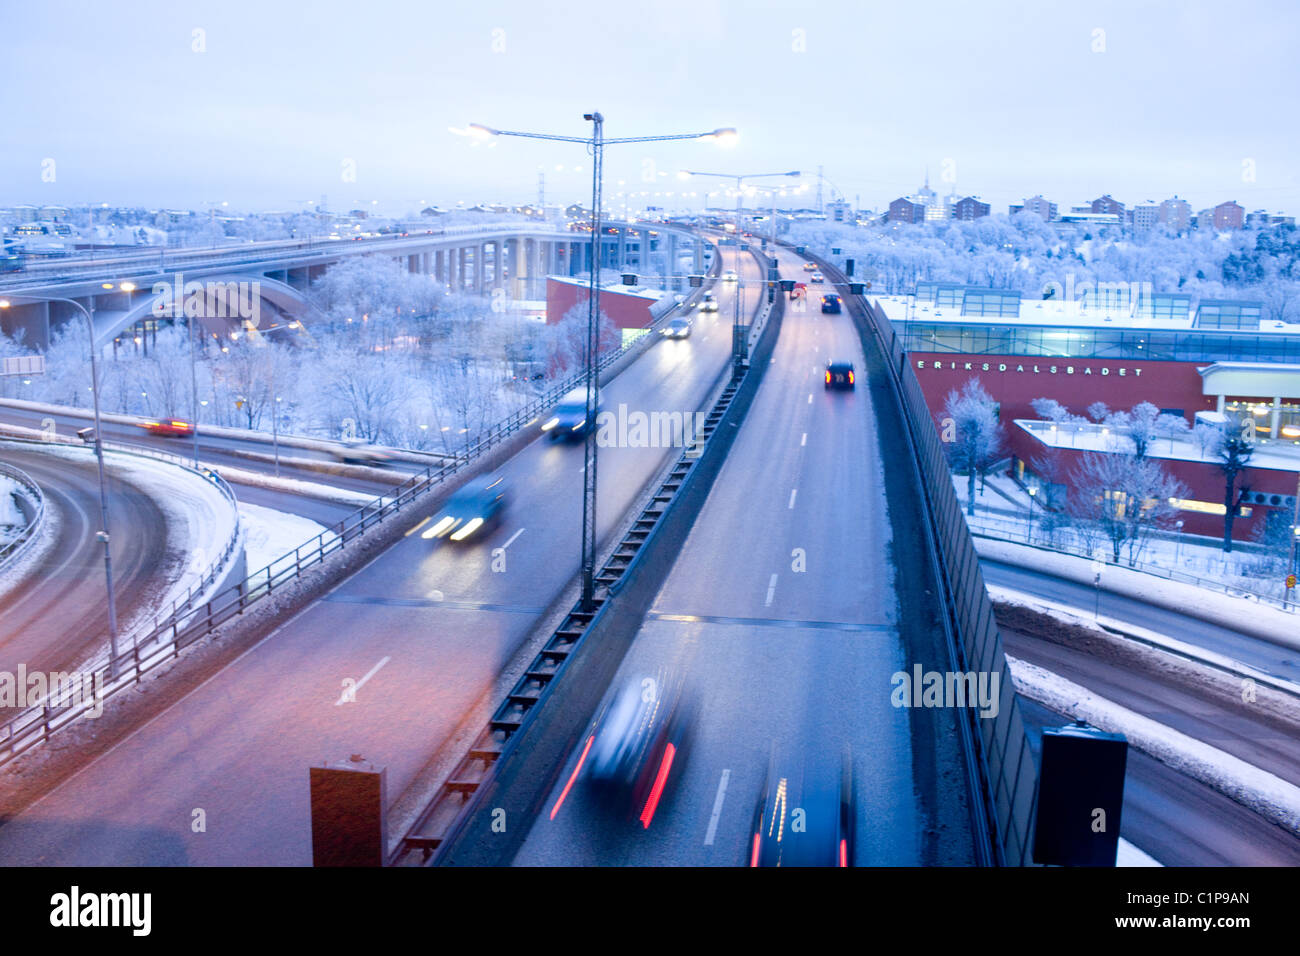 Traffic on elevated road at dusk - Stock Image